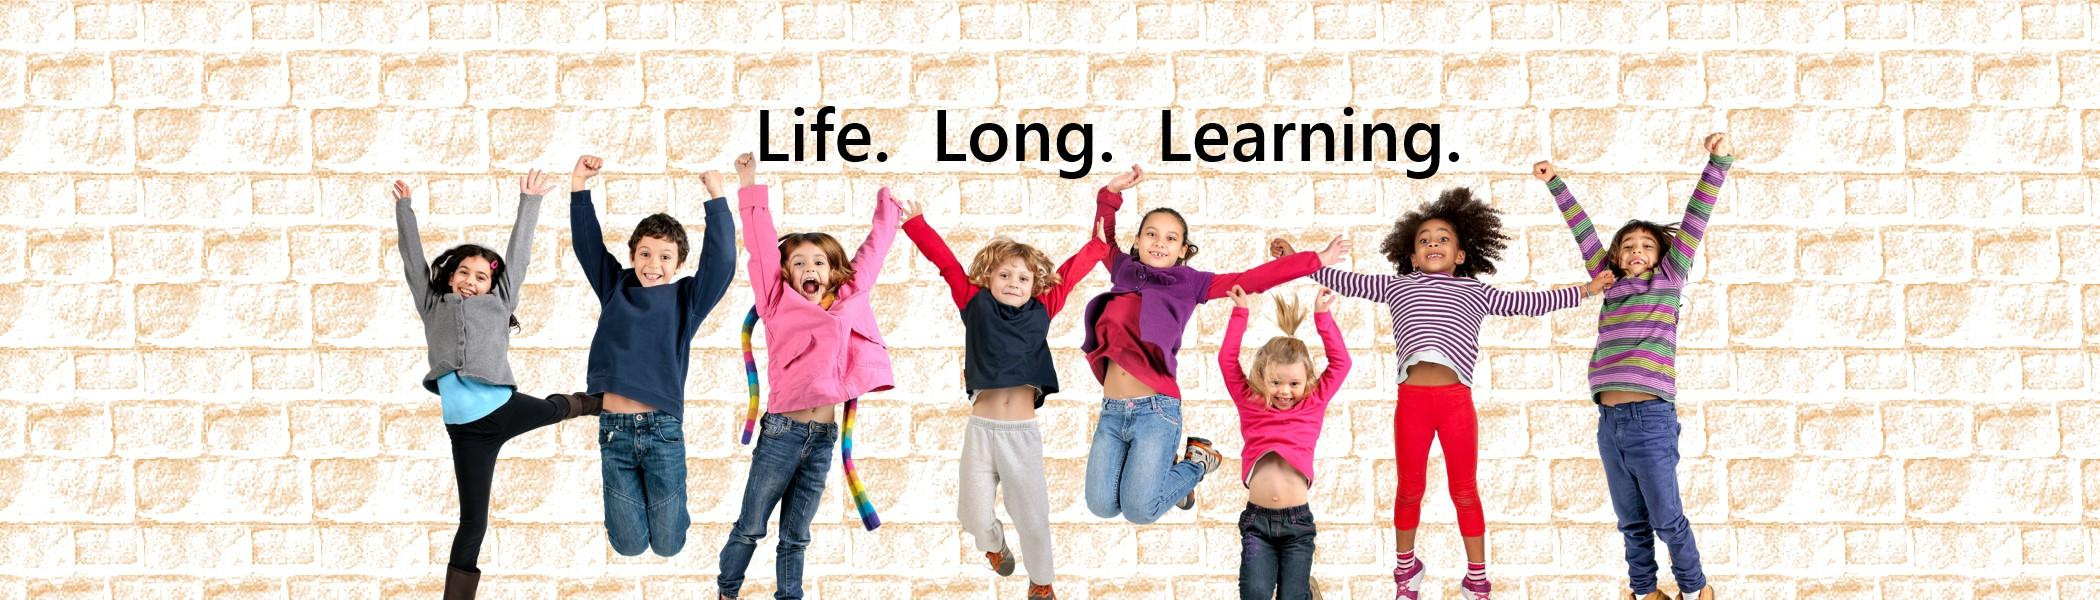 Children in a row jumping up with the words life long learning above them